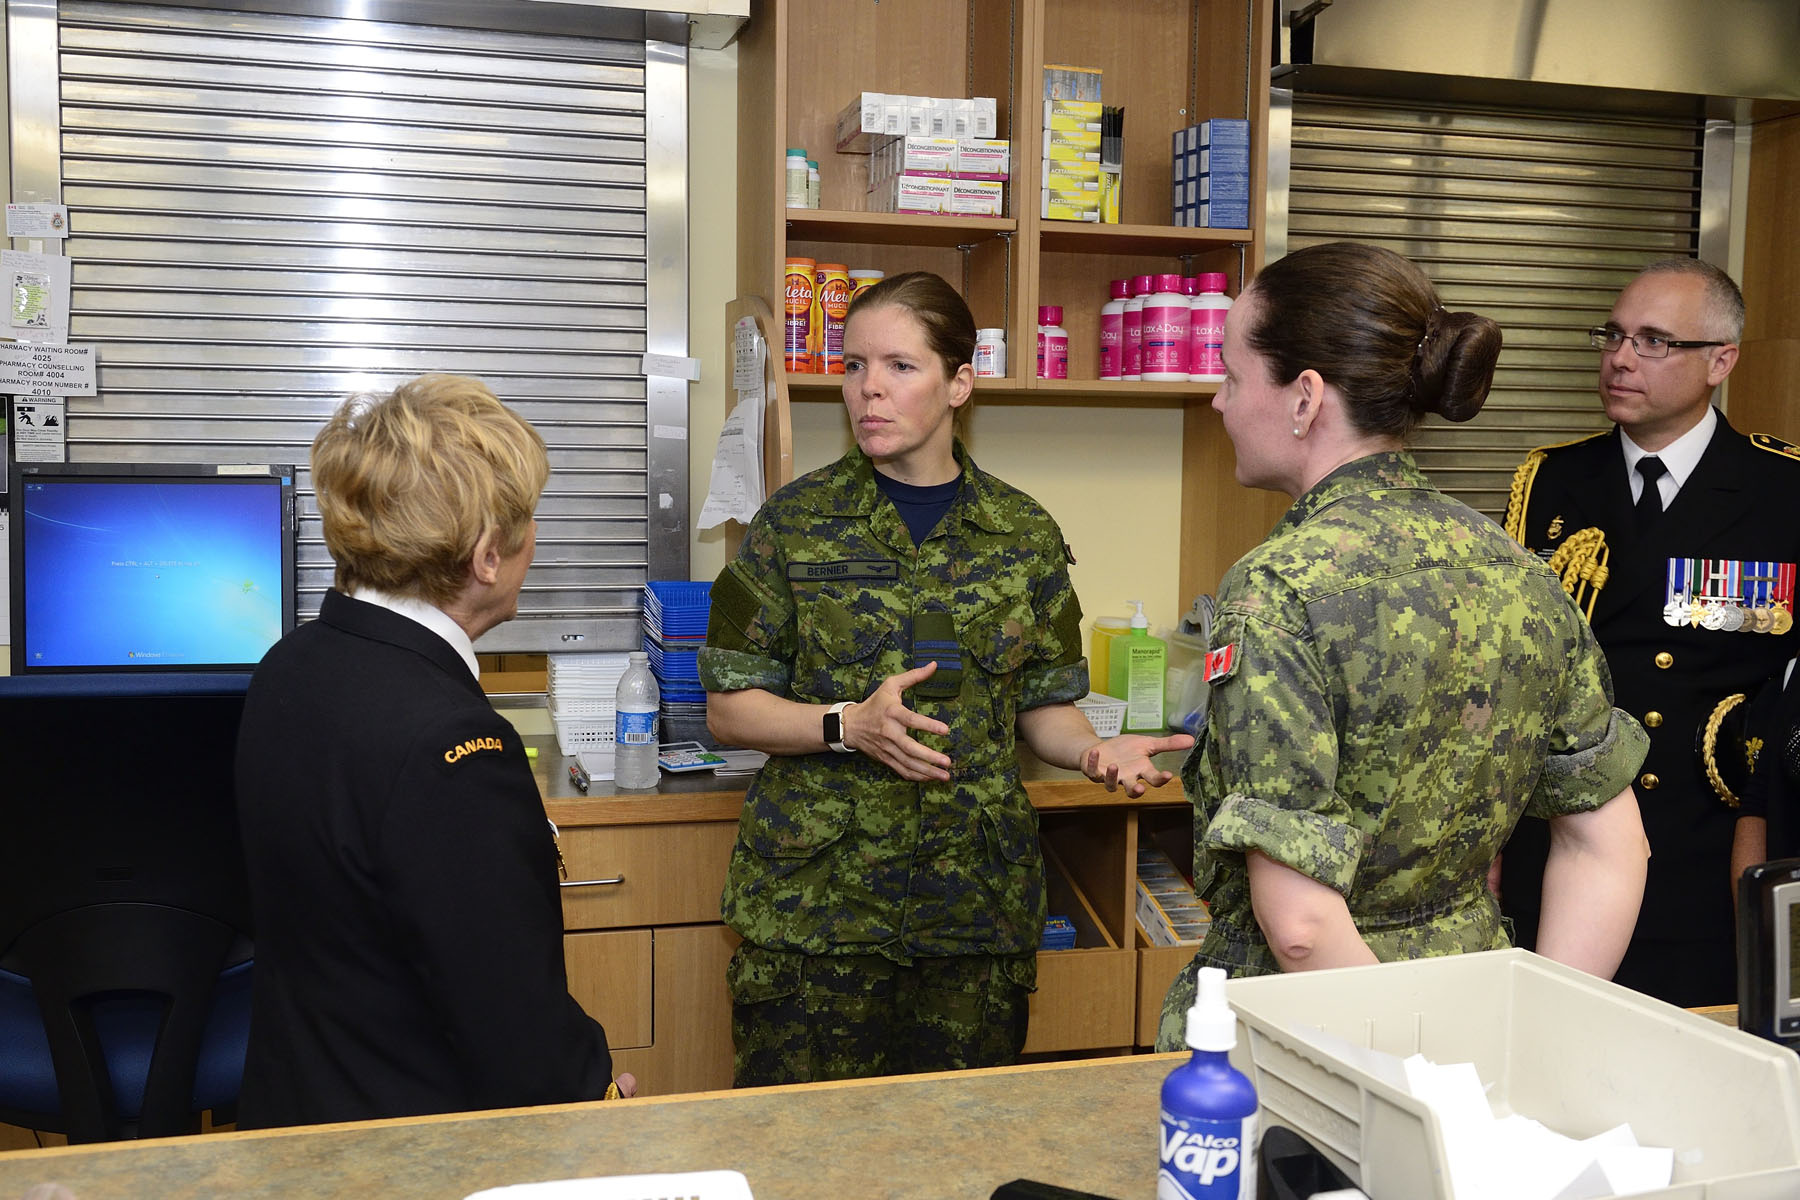 The CAF has a wide variety of mental health services and programs available to its members.